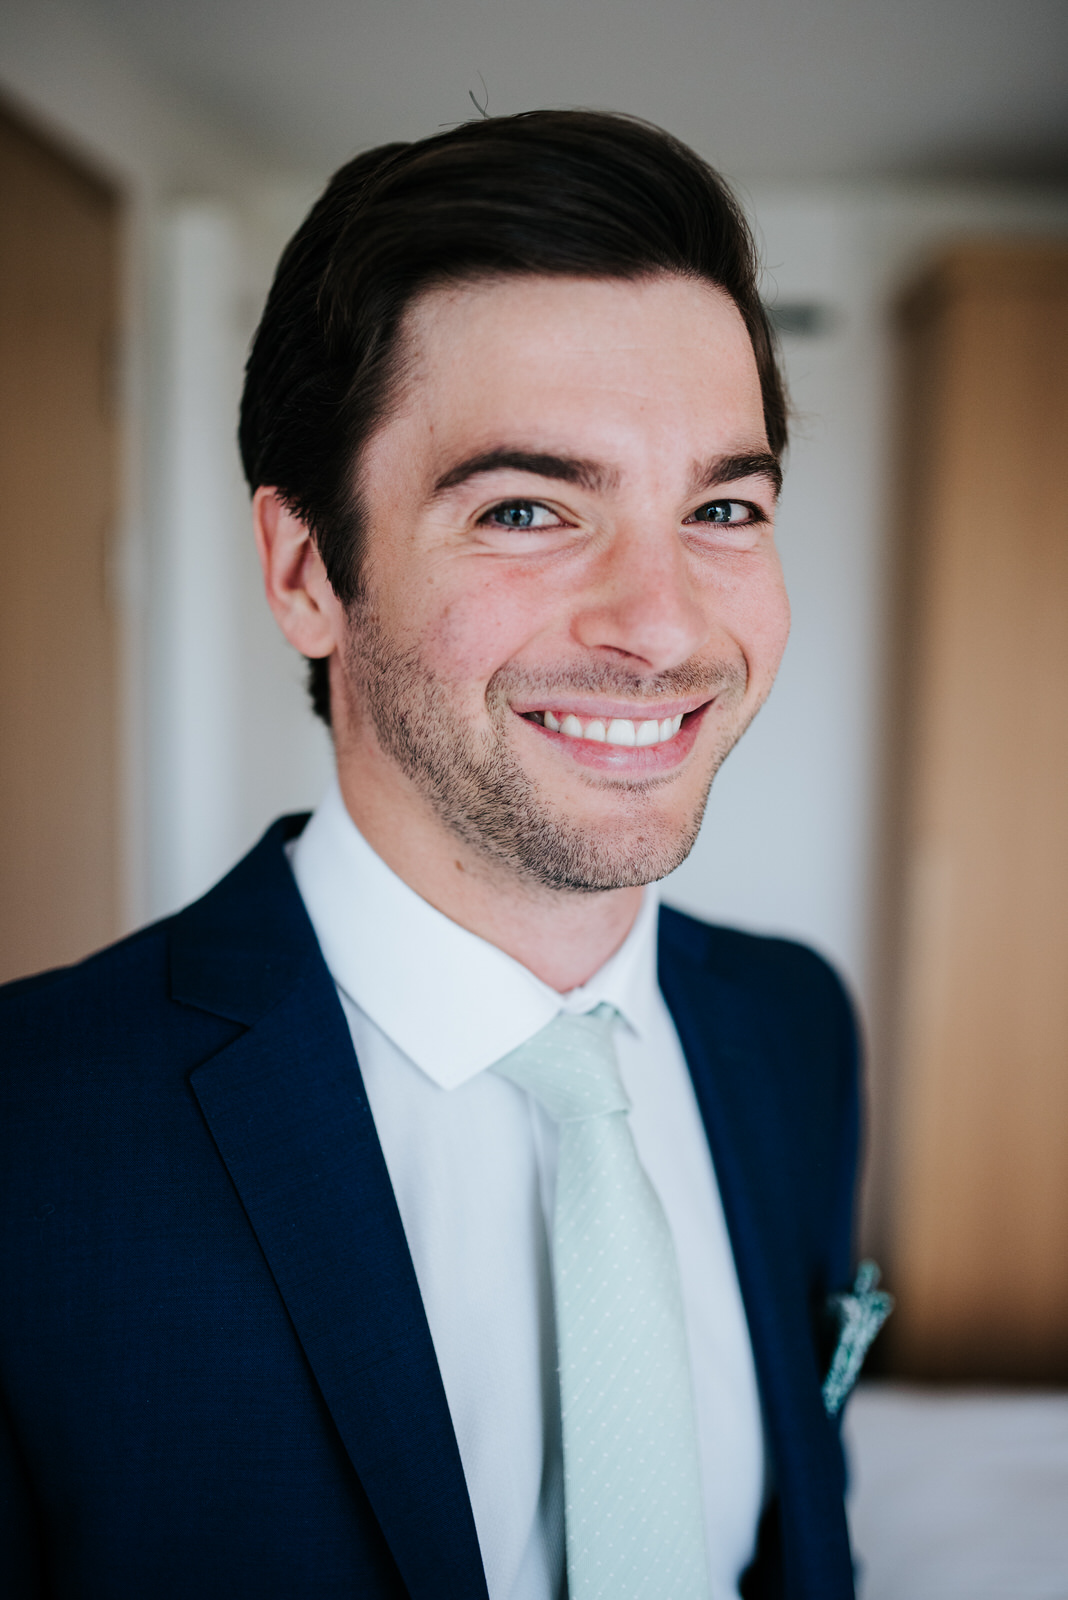 Portrait of groom looking into camera during wedding preparation